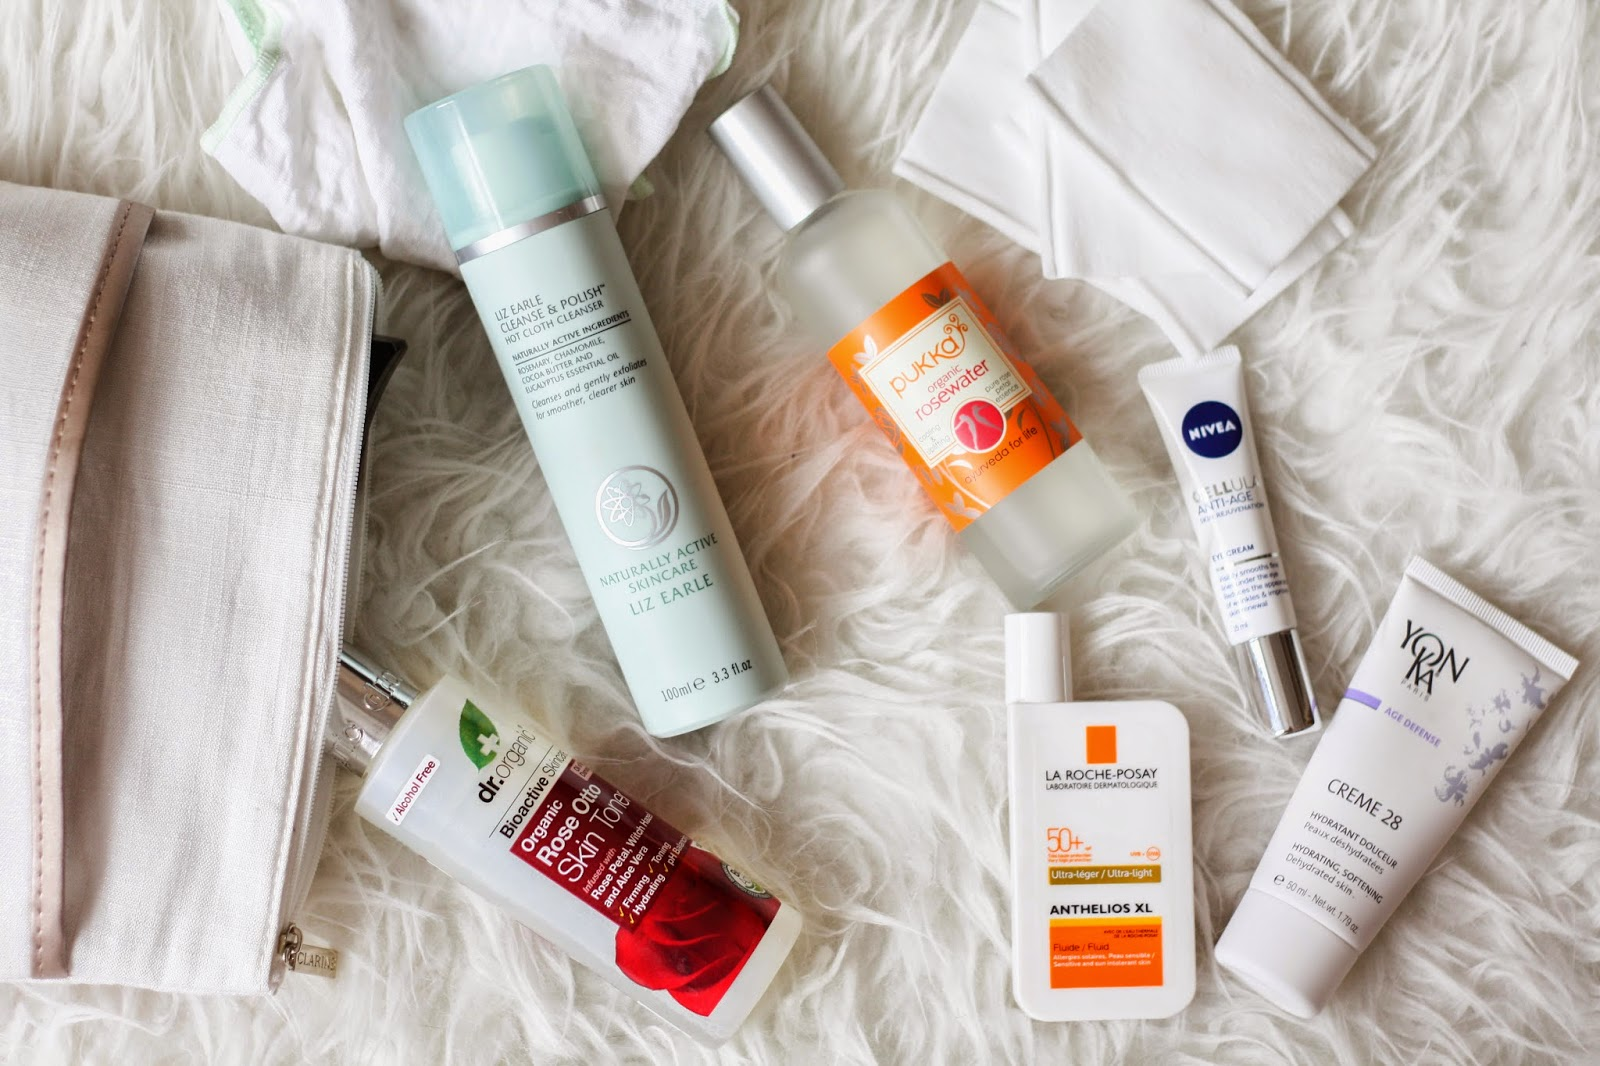 My travel skin care routine